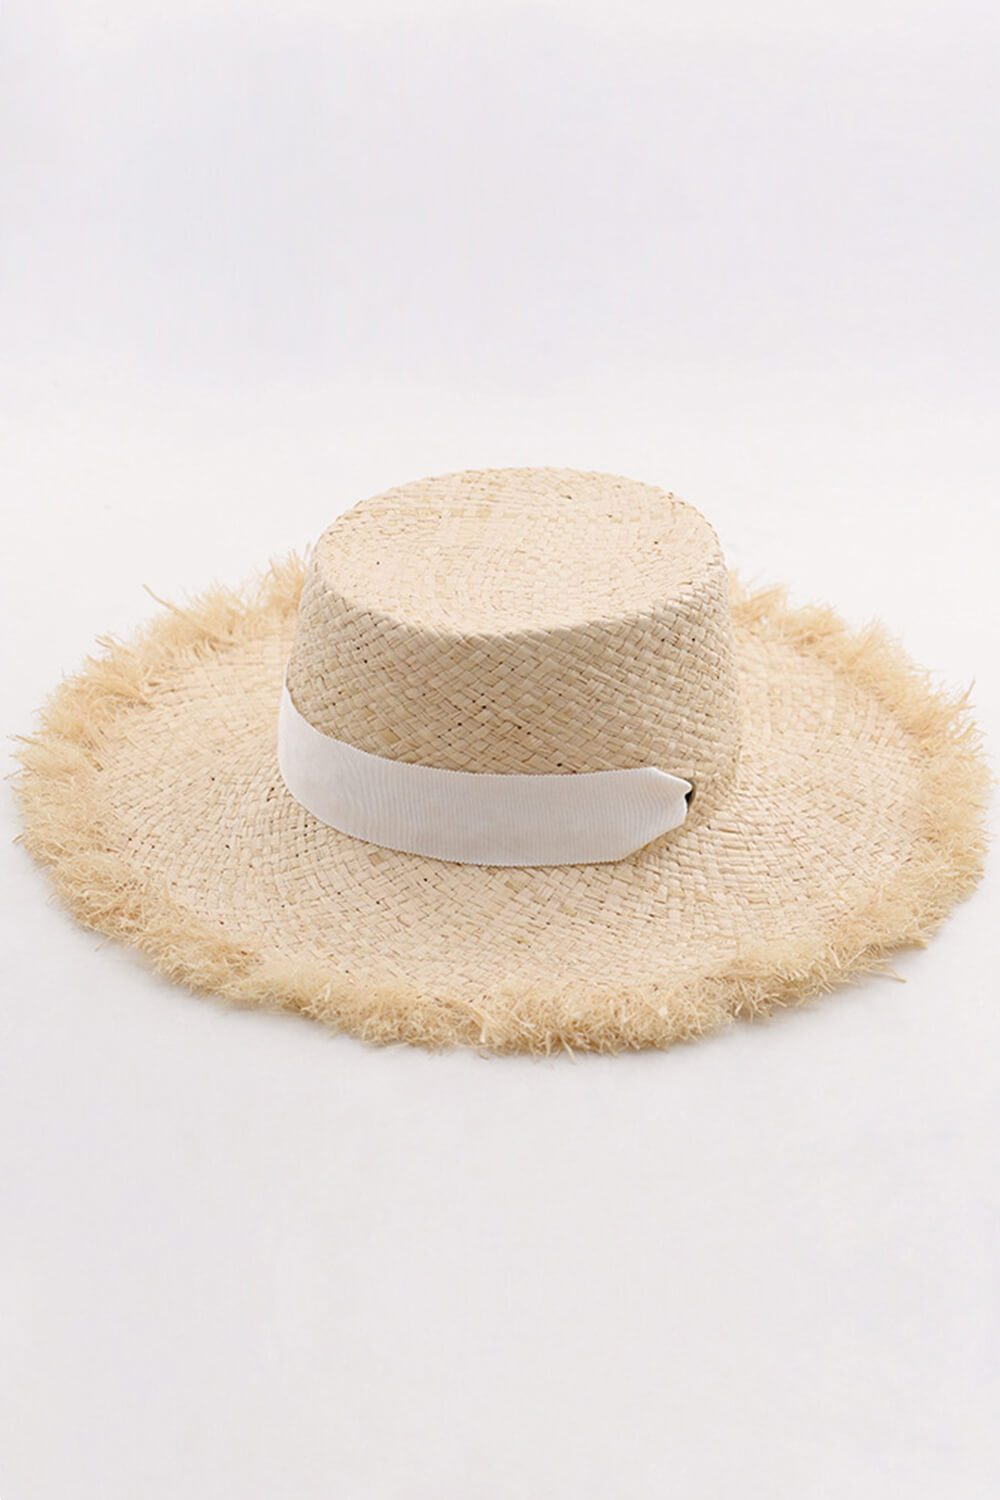 Raffia Straw Boater With White Chin Tie